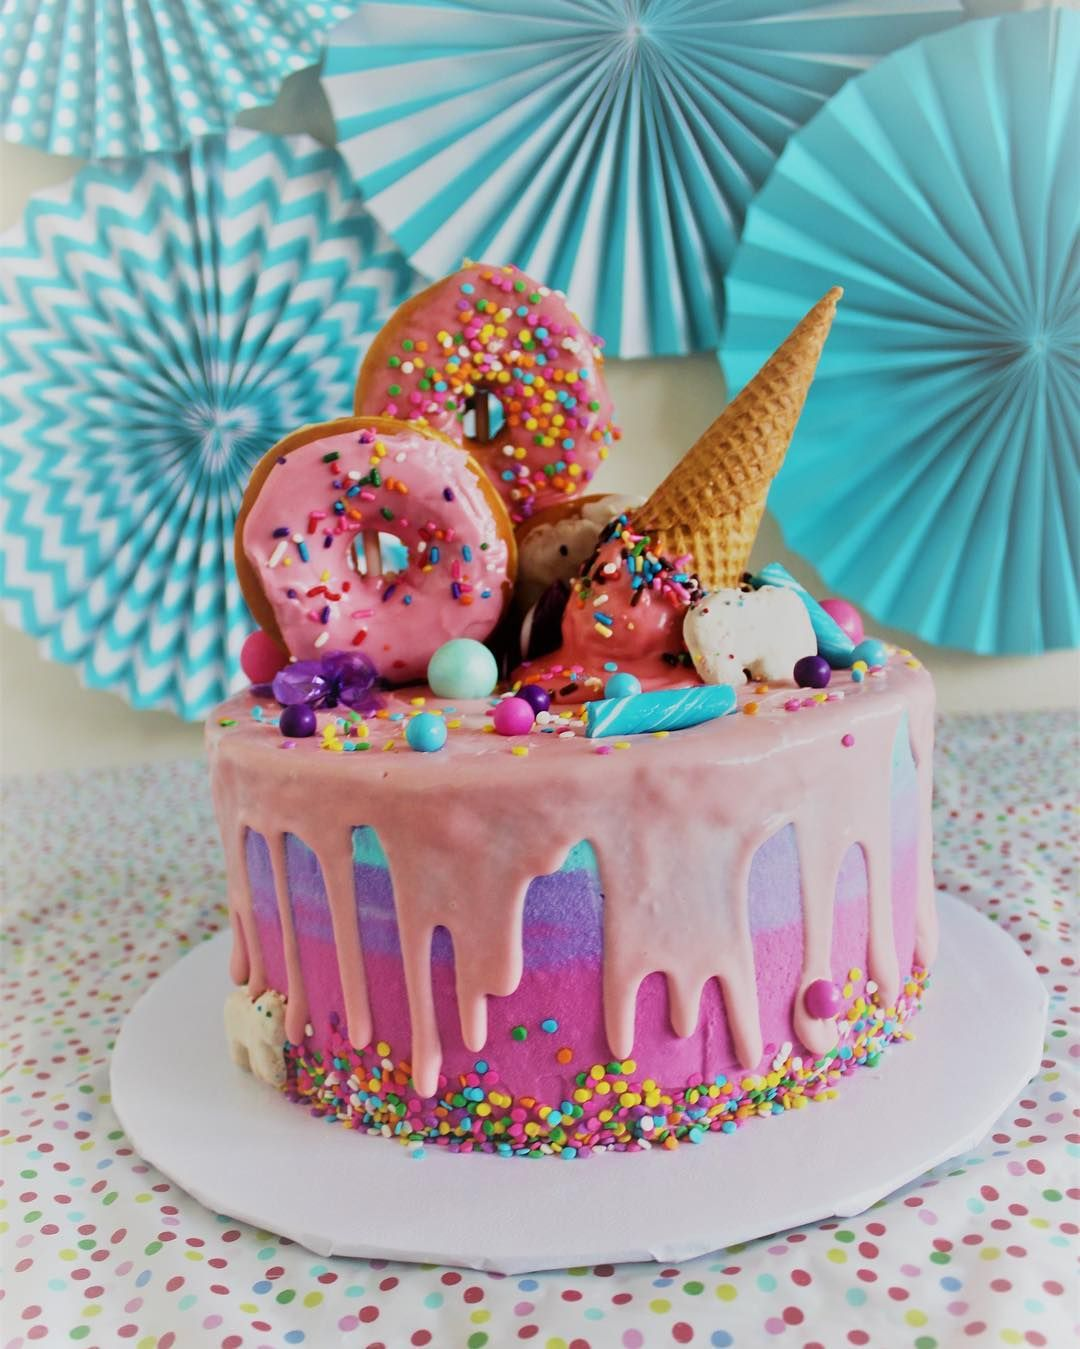 Whimsical Ice Cream Cake Made With The Curious Creamery Mix